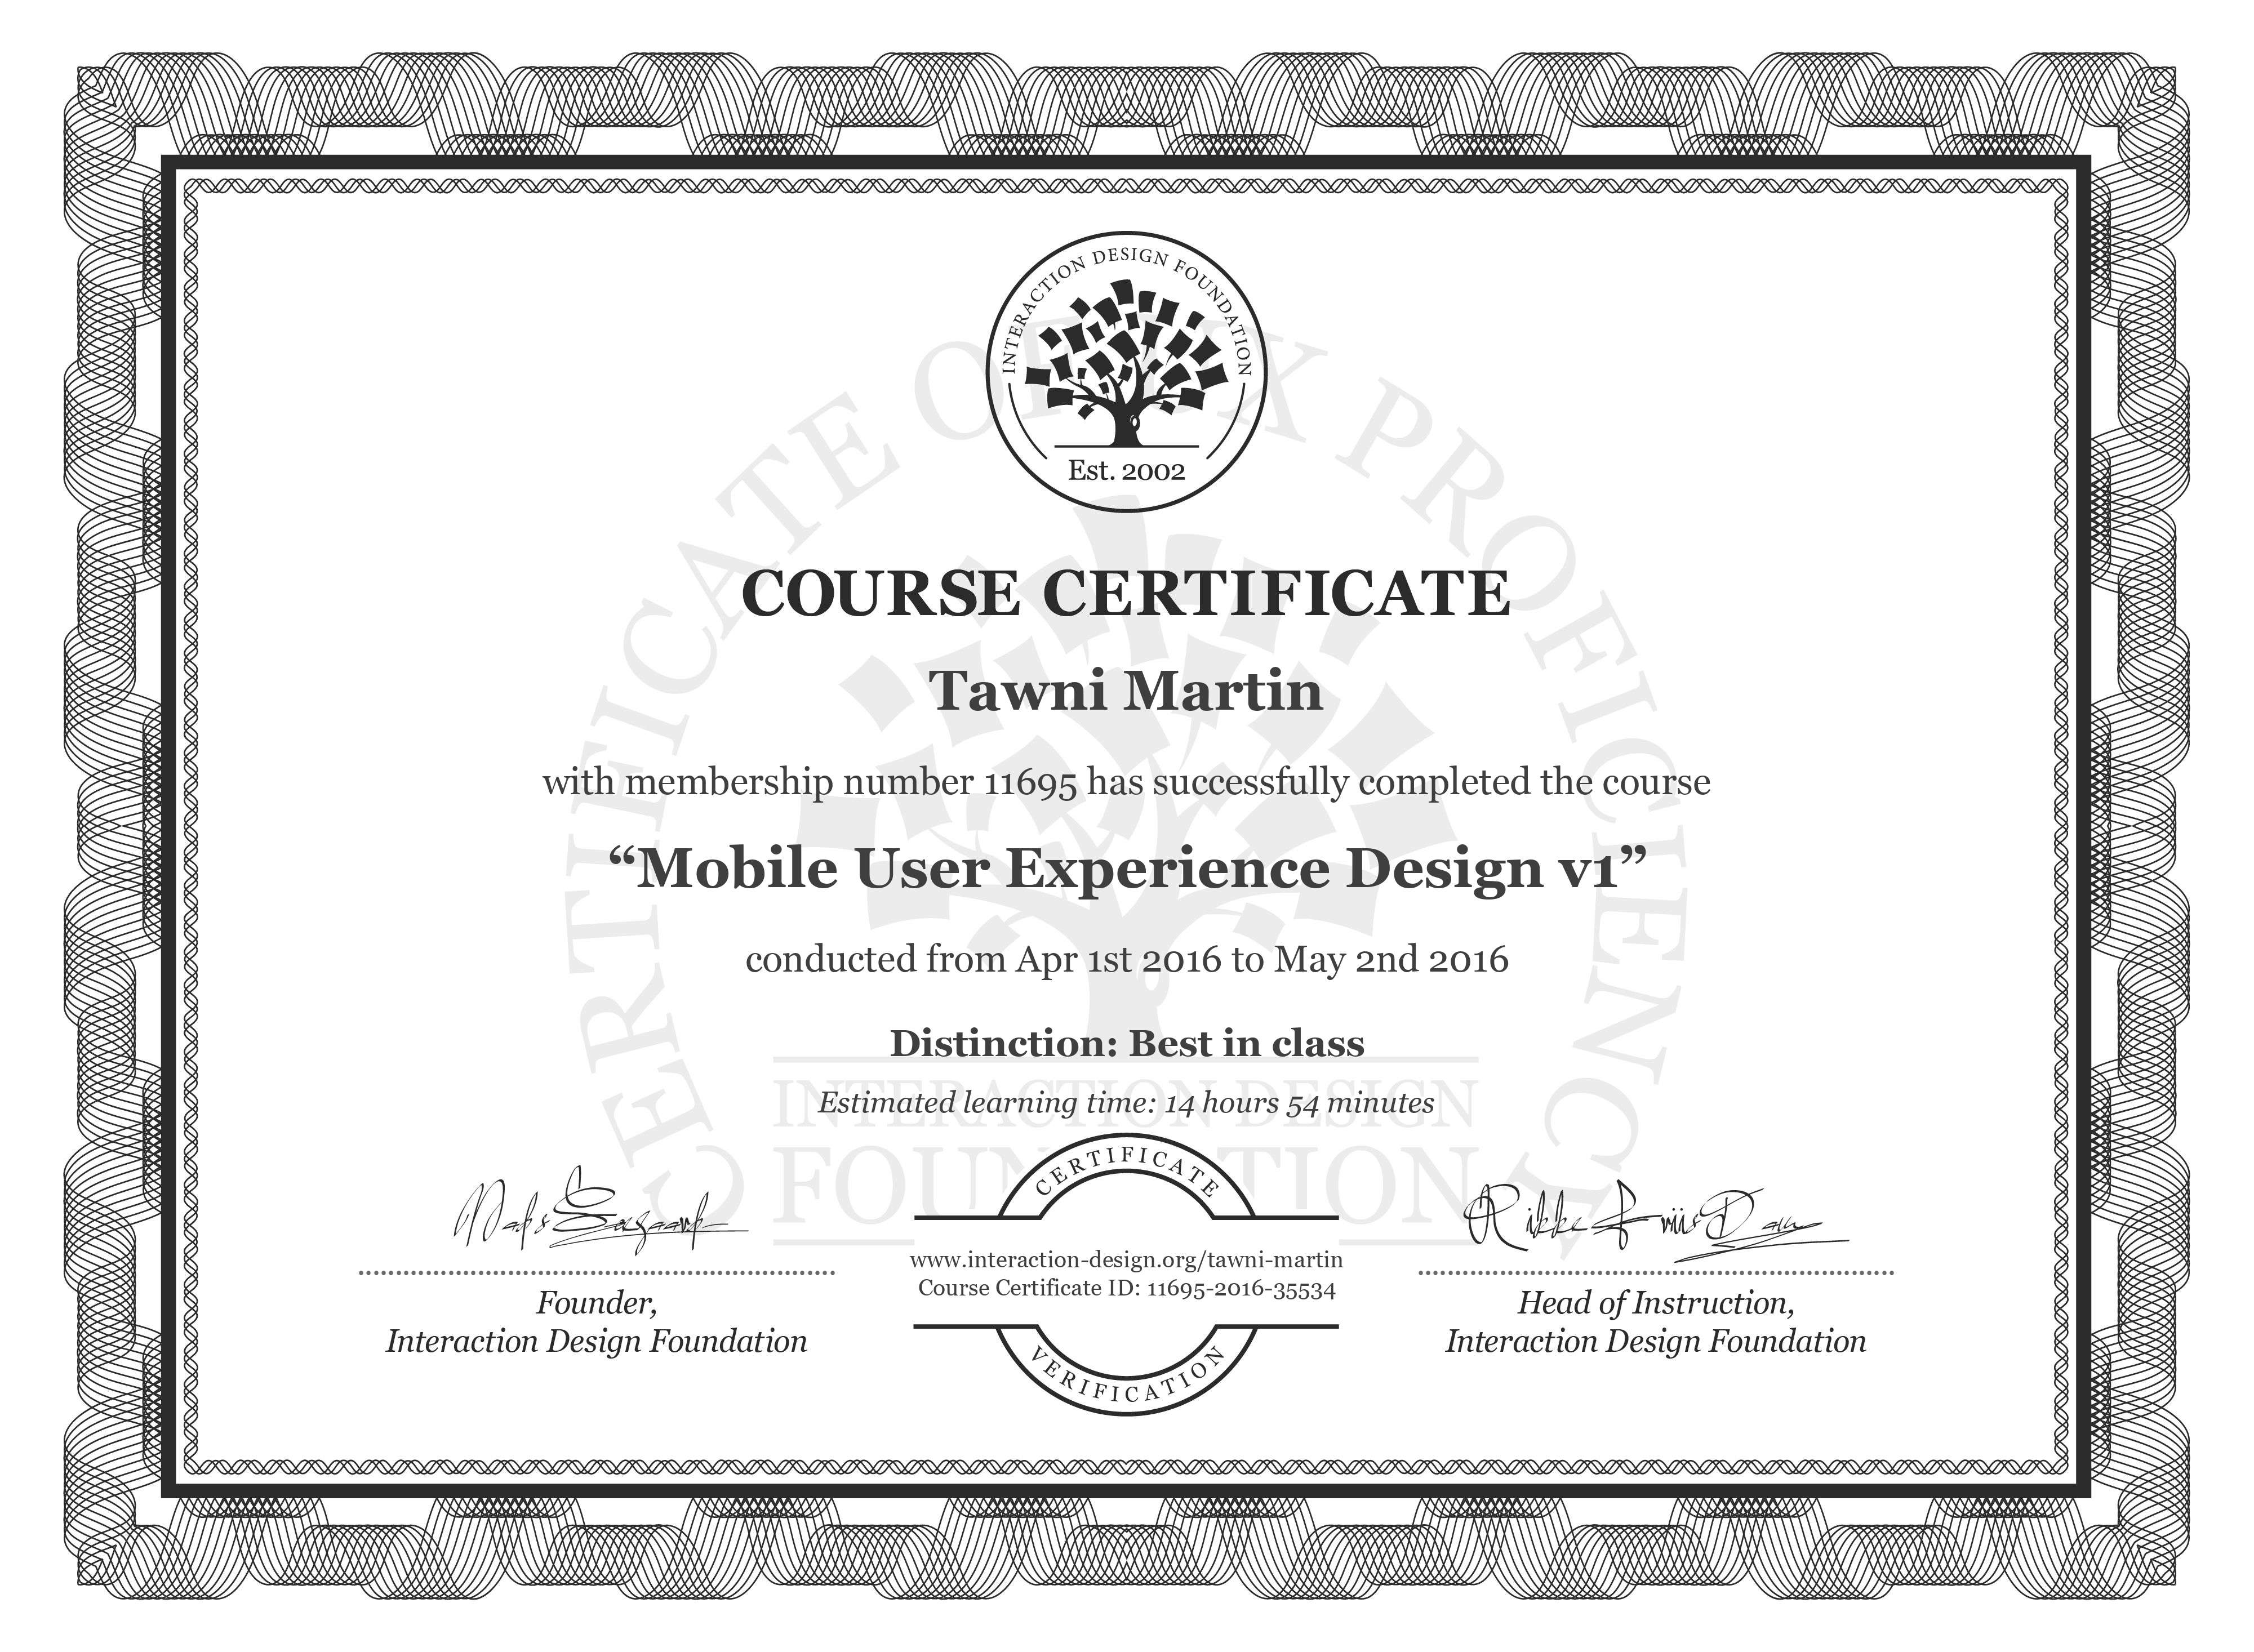 Tawni Martin's Course Certificate: Mobile User Experience Design